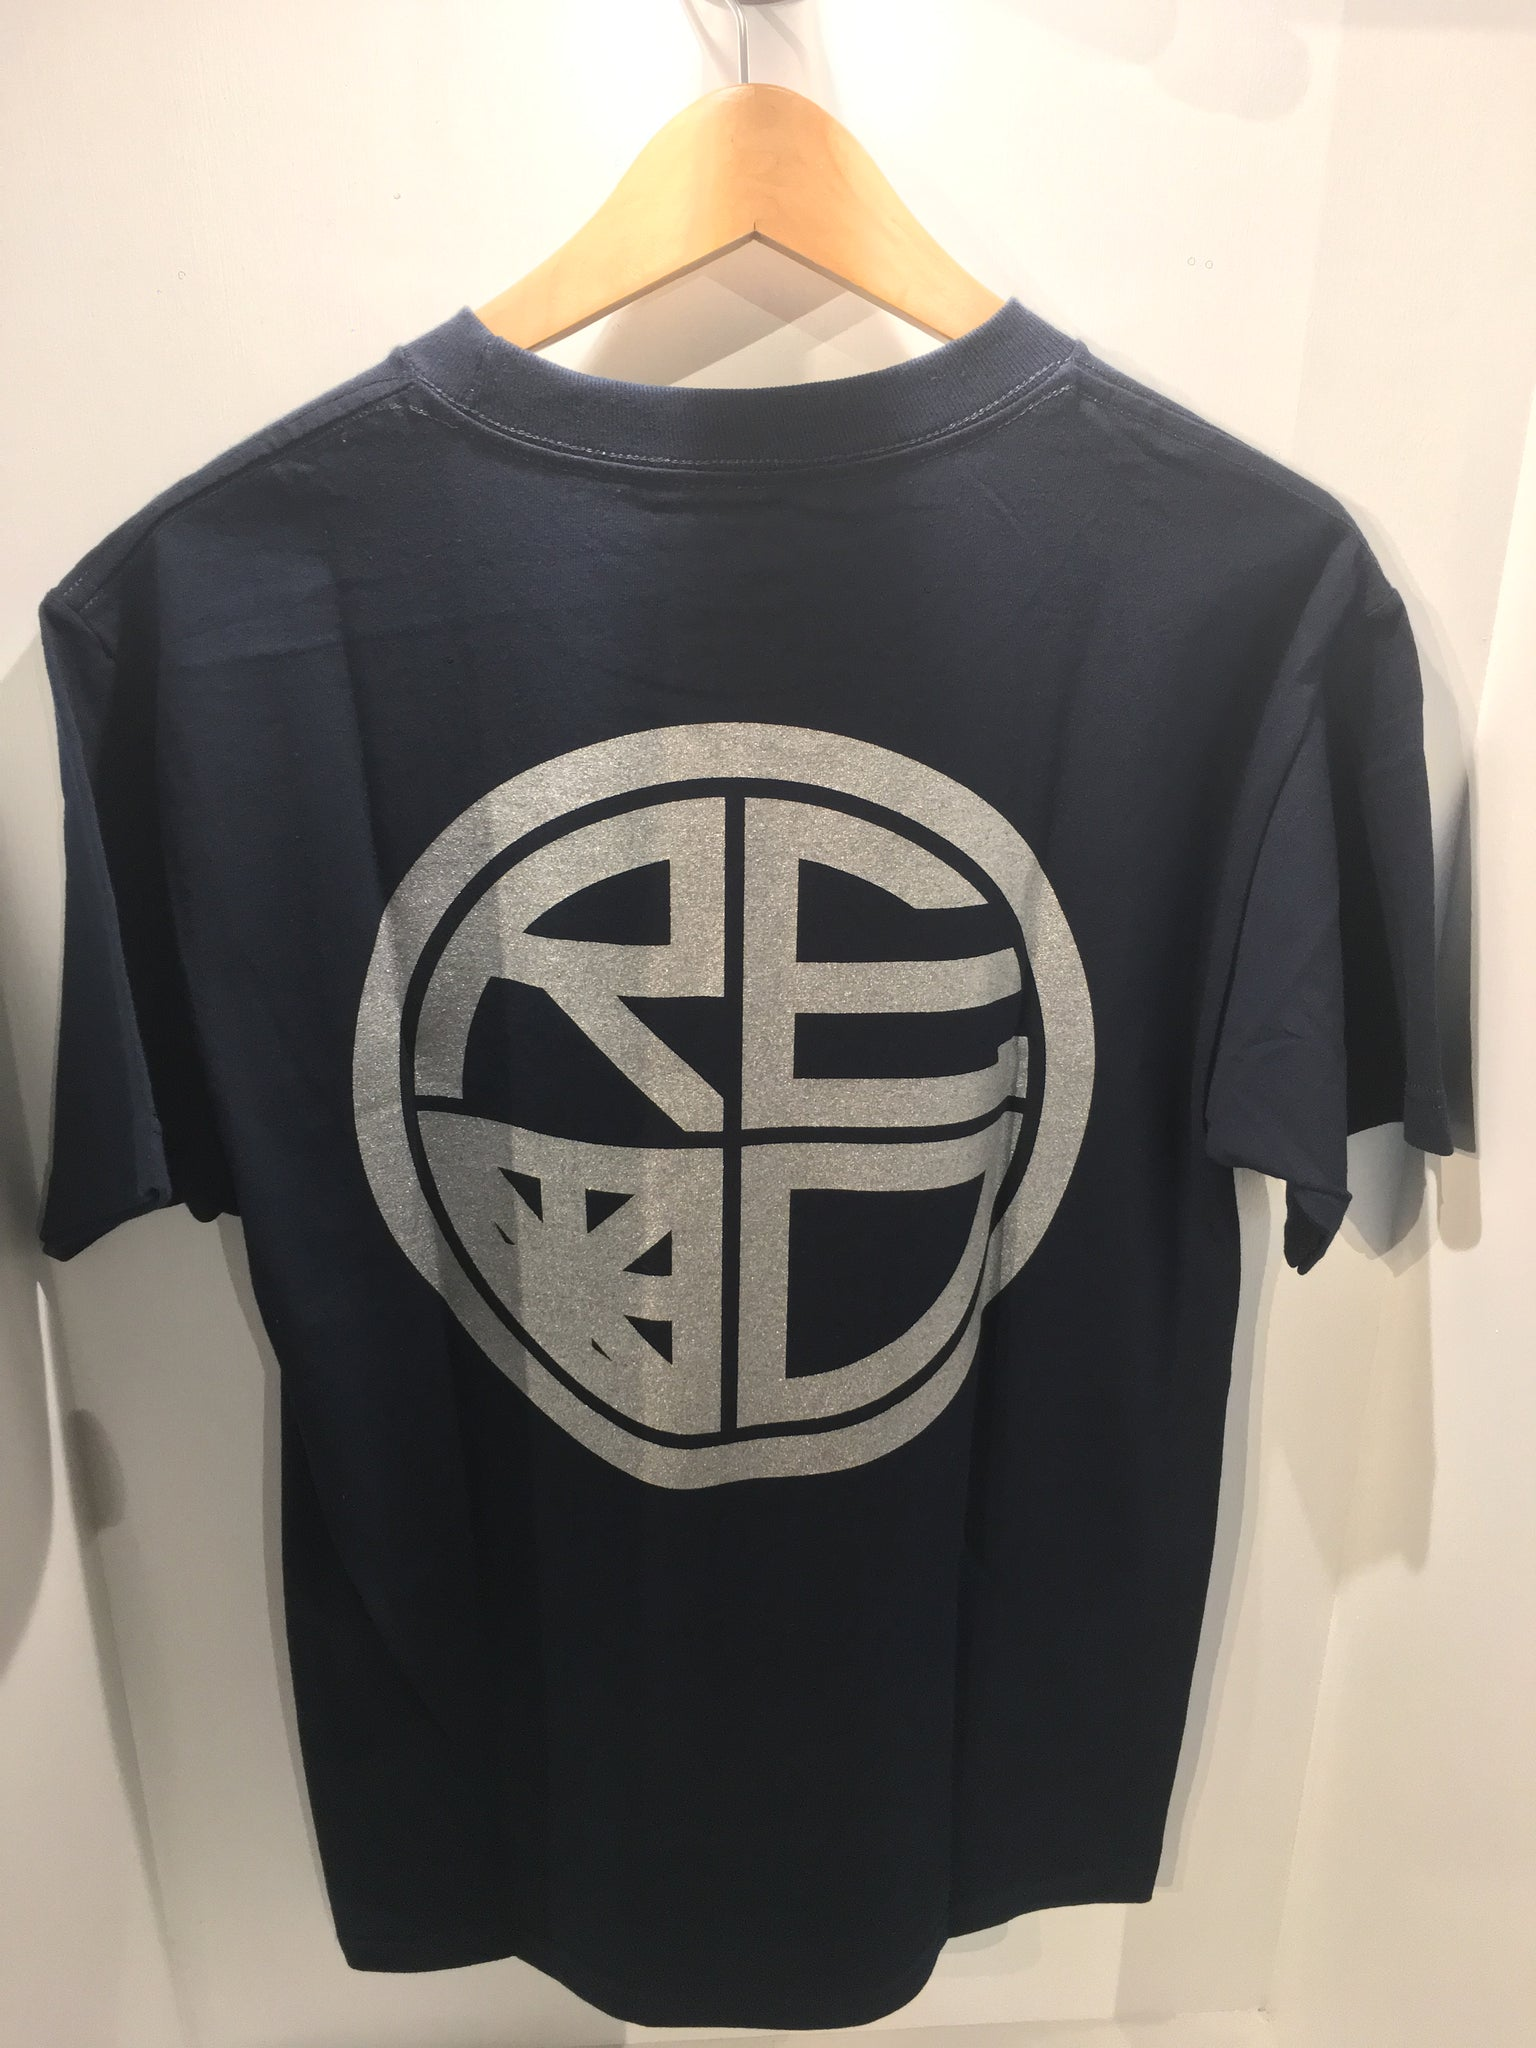 Classic Logo Mens Tee - Navy Blue & Silver - Red Label Clothing Inc